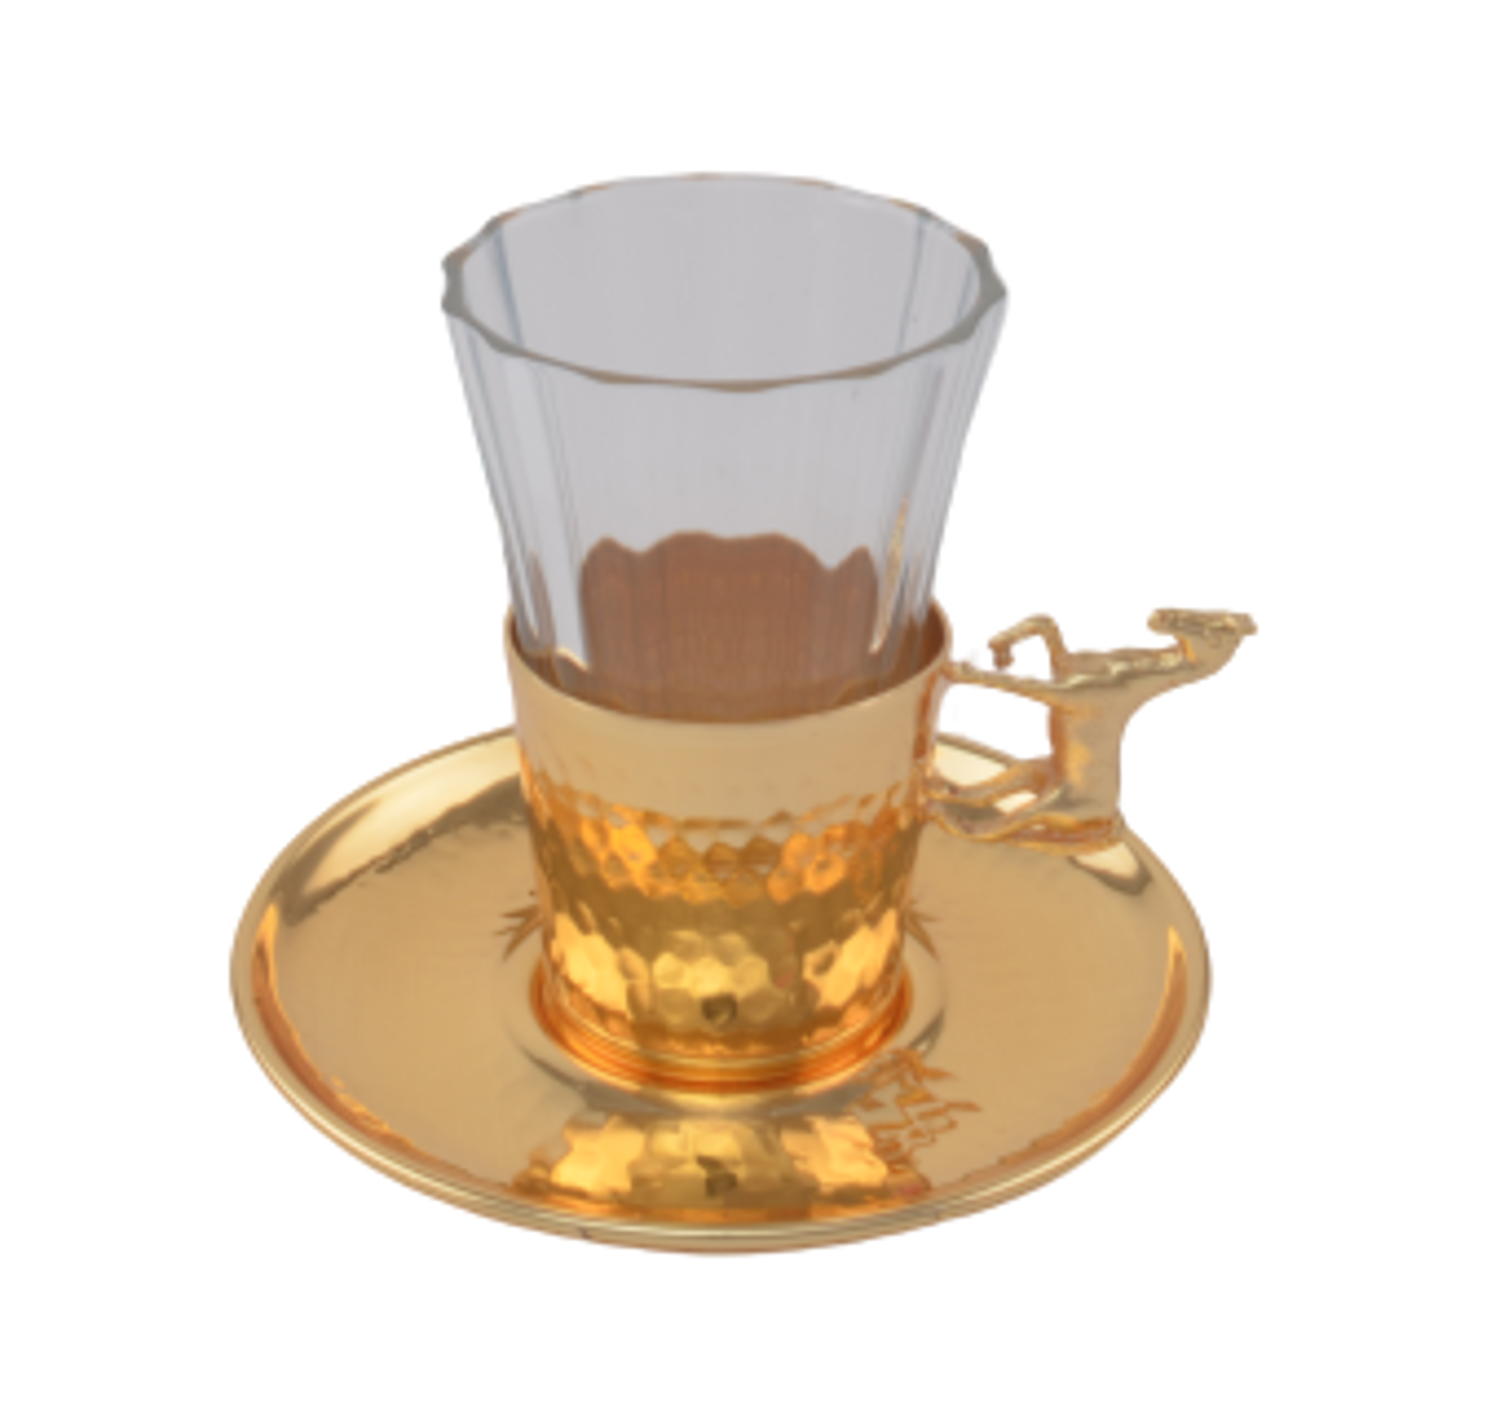 MEVLANA TURKISH TEA CUP GOLD HORSE resmi